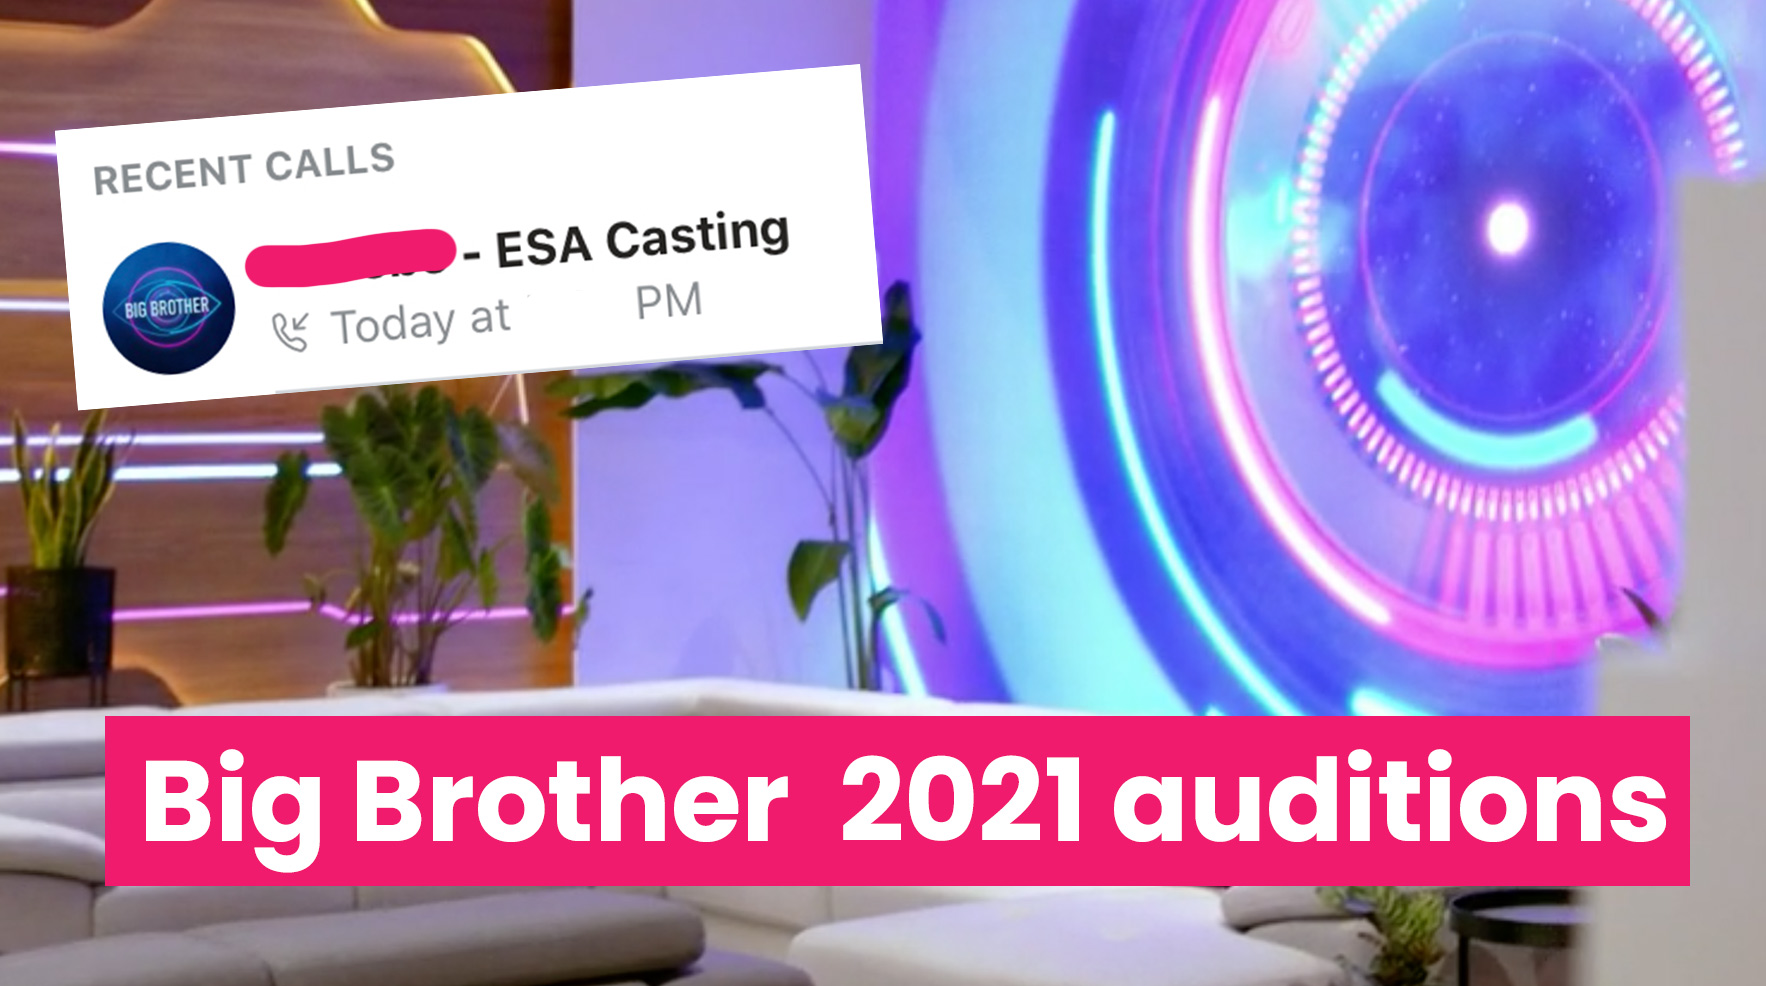 Big brother 2021 eviction betting double bitcoins in 100 hours is how many weeks